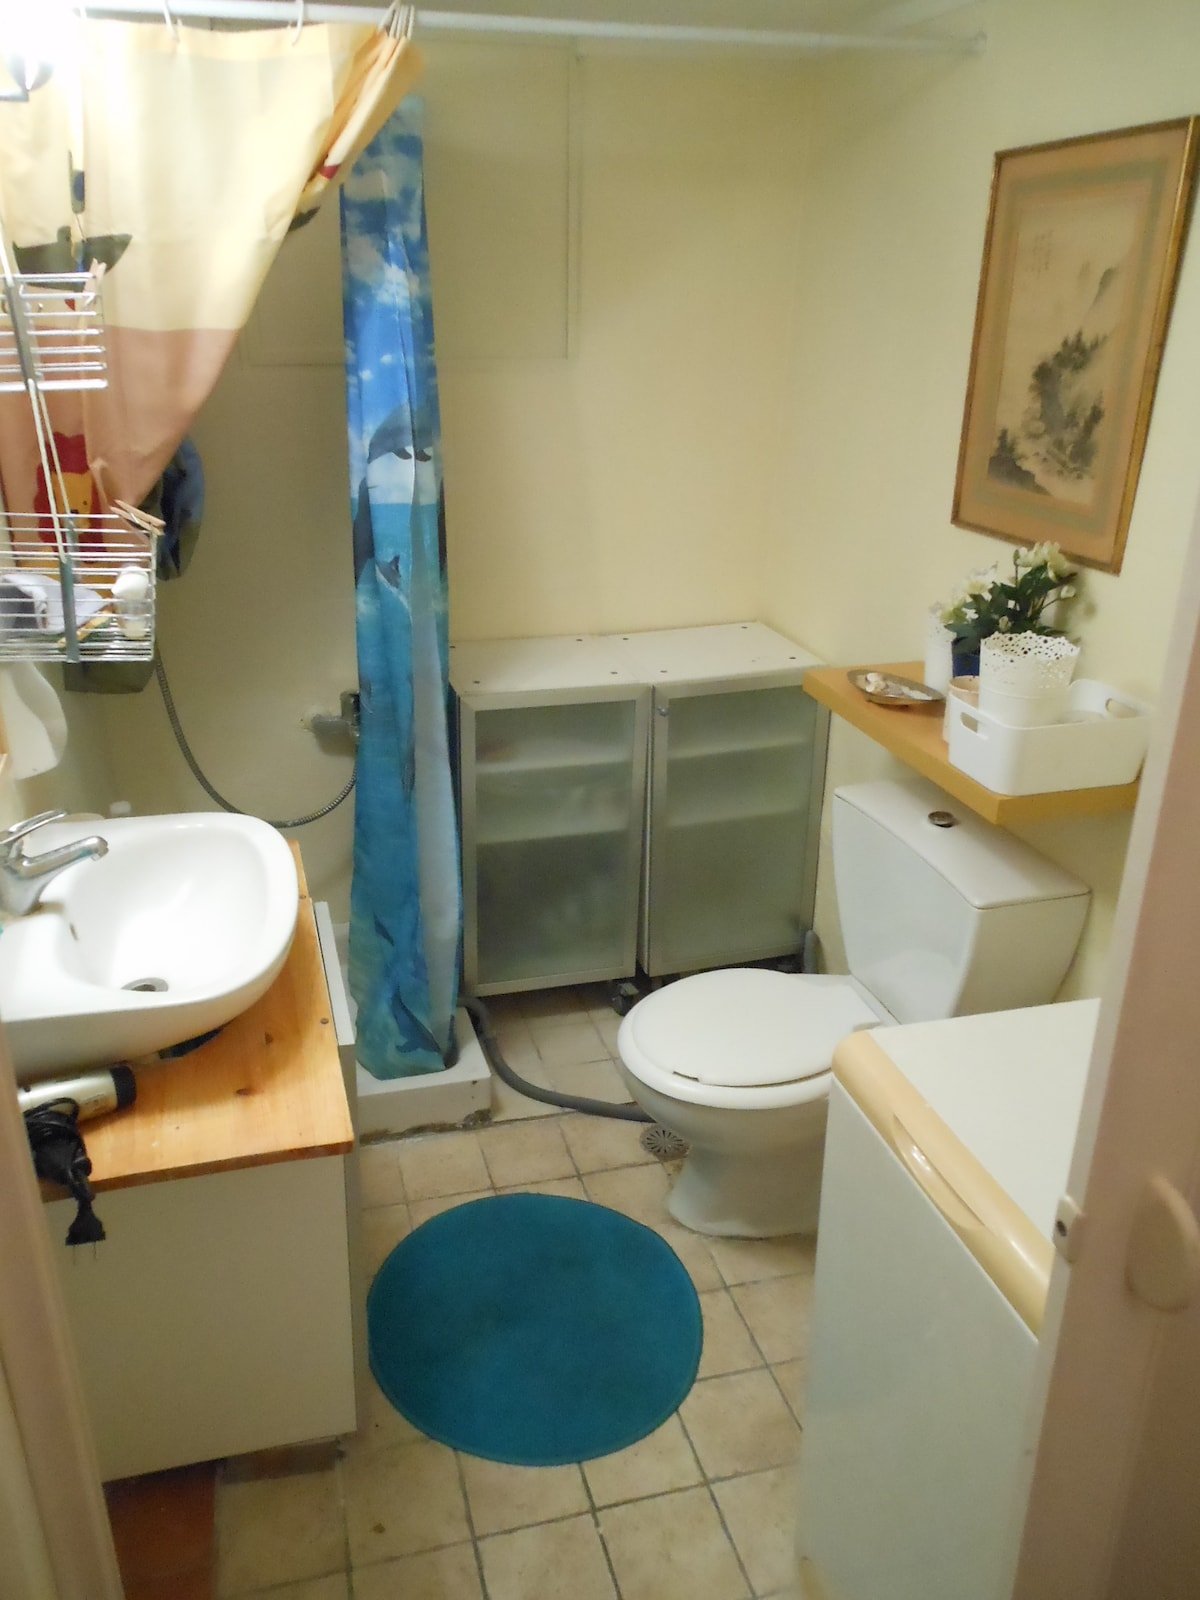 The bathroom. Renovated and functional and ample storage spaces.